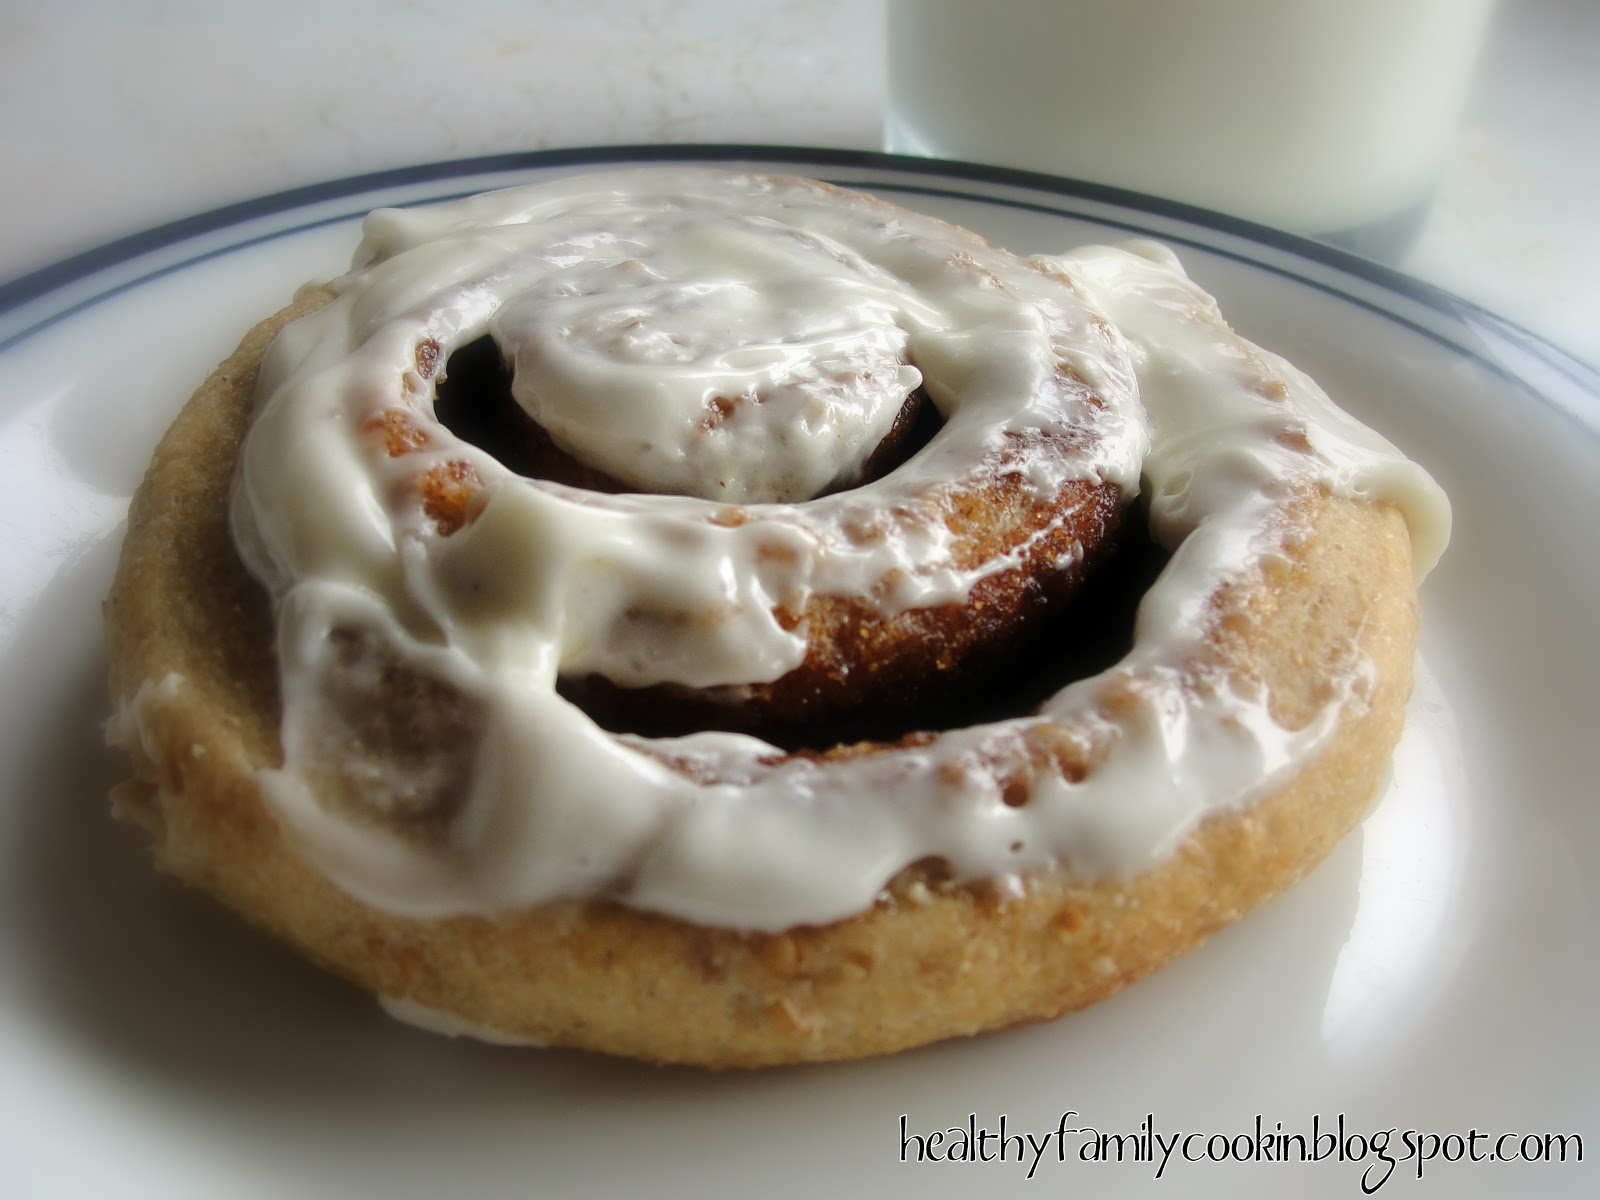 Healthy Family Cookin': Toasty Oat Cinnamon Rolls